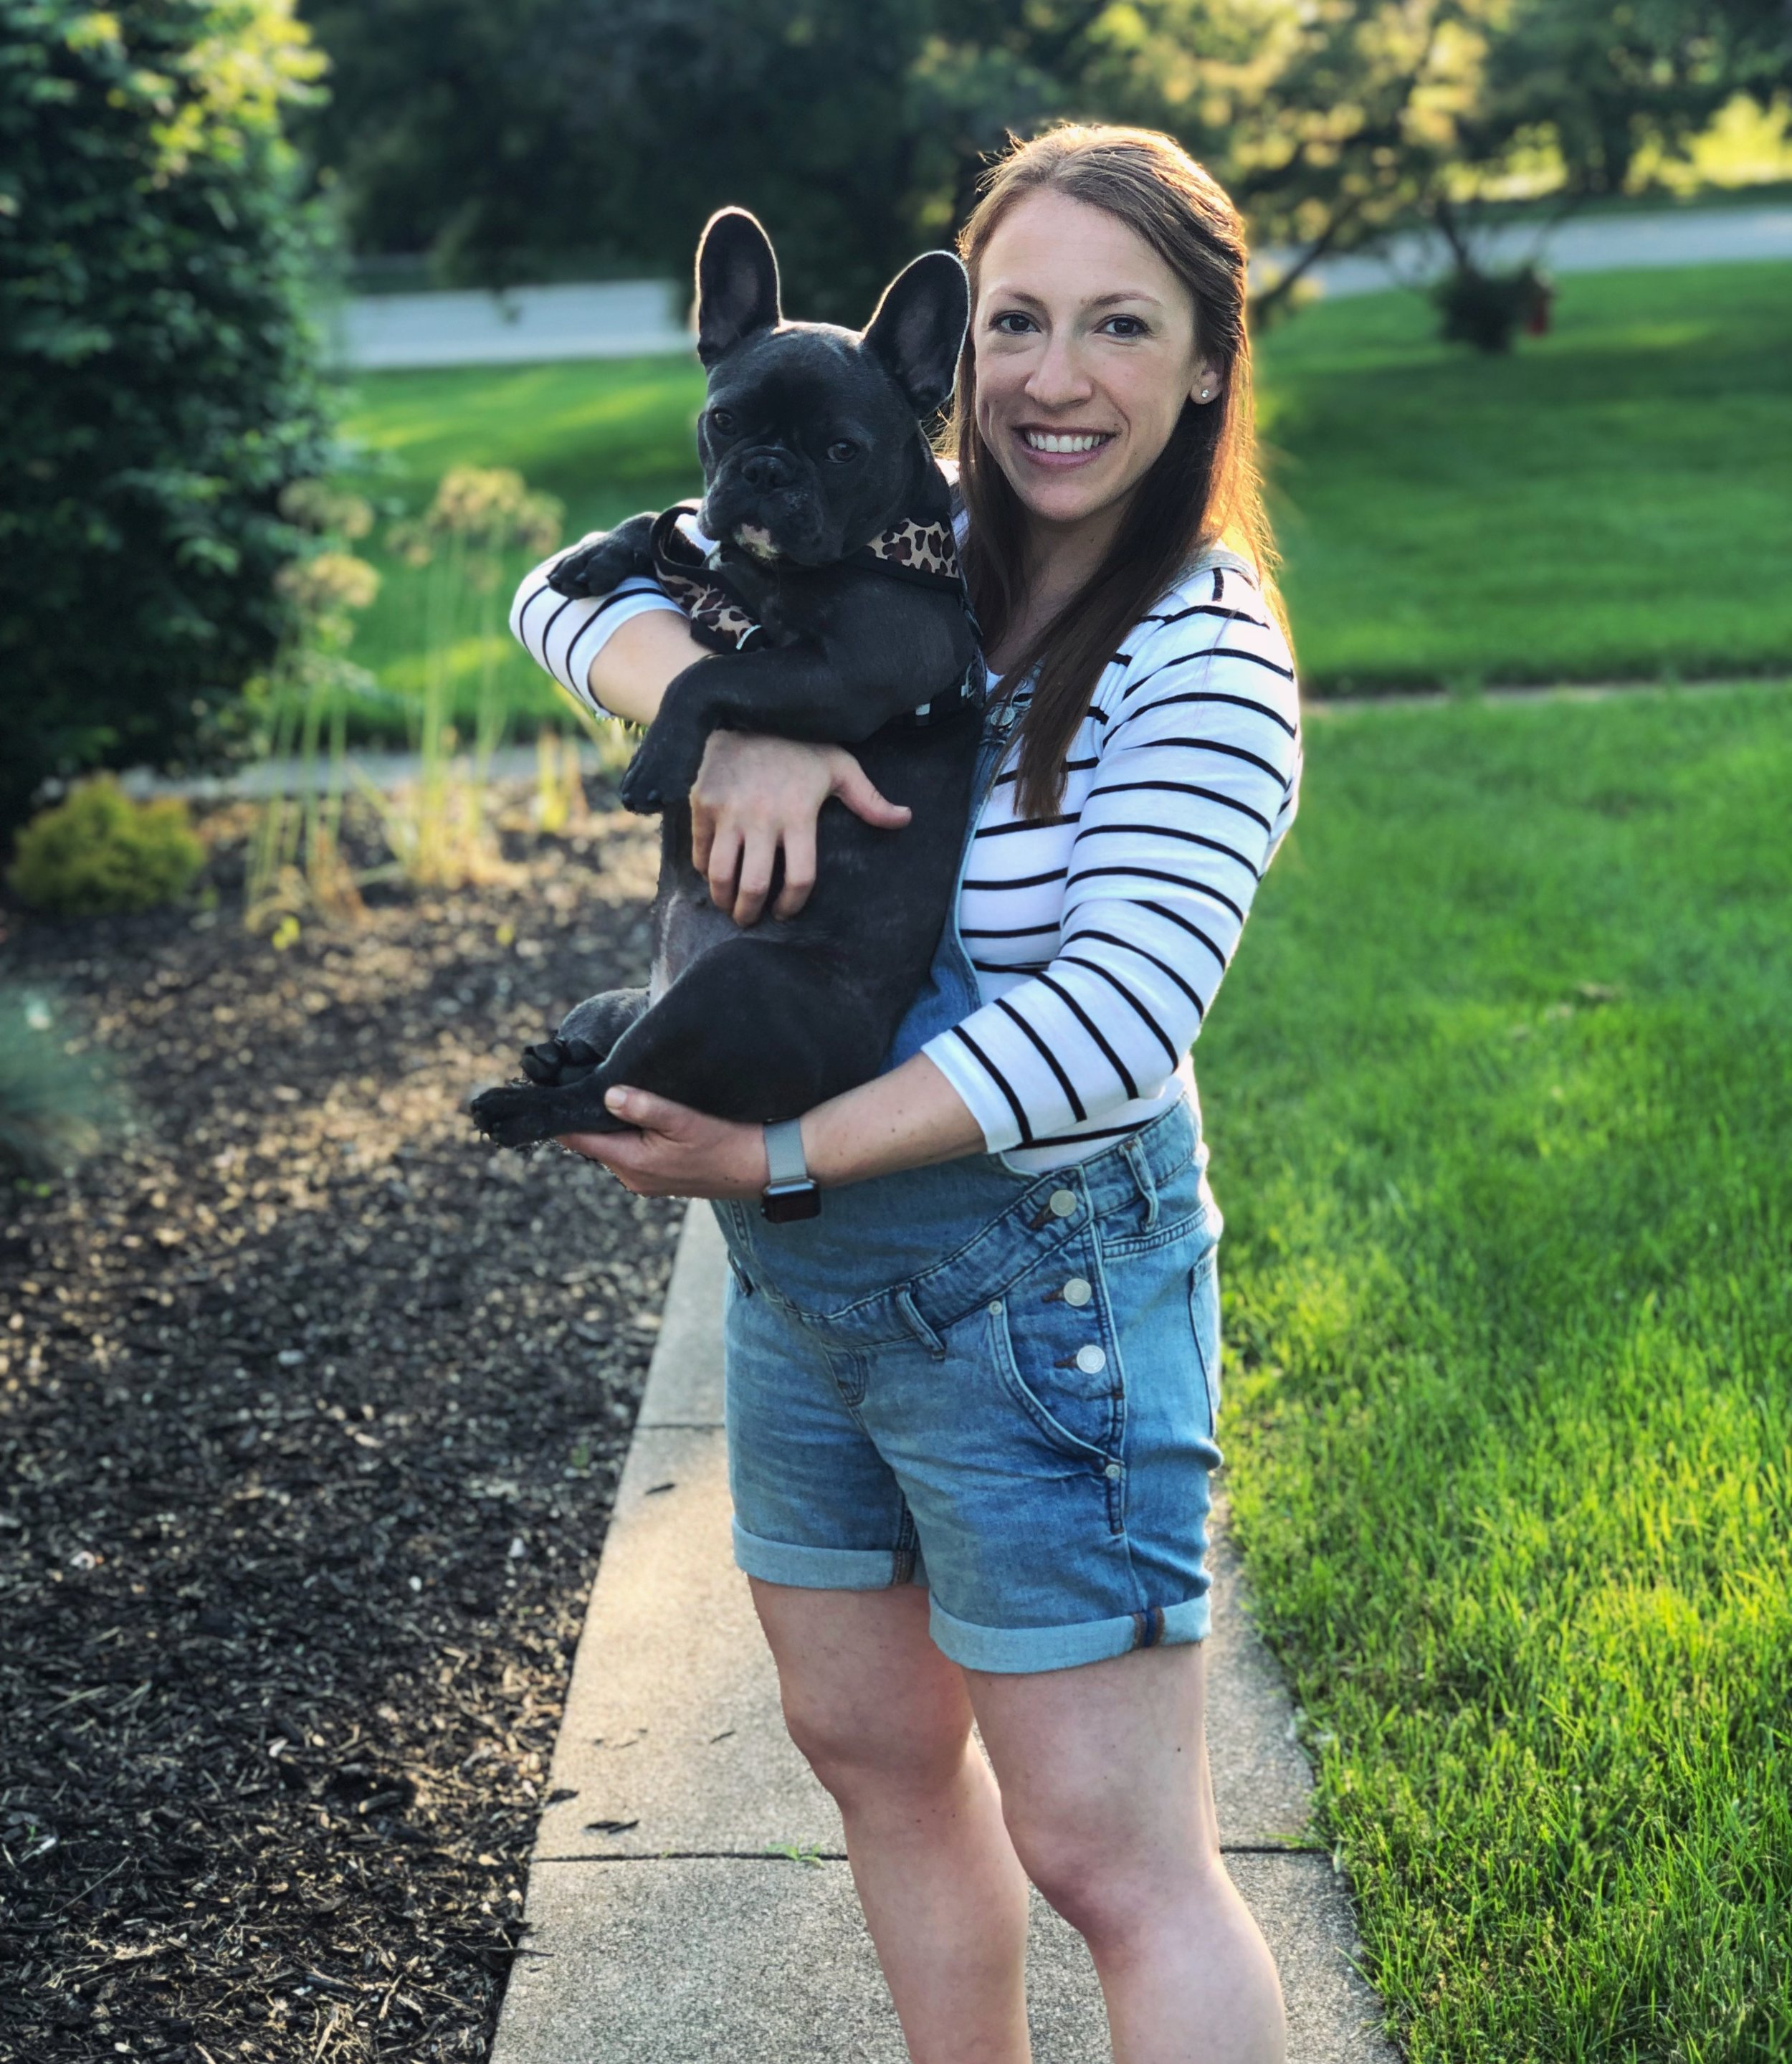 This picture doesn't have much to do with magnesium but pregnancy overalls are the best and so is Claudette the frenchie!